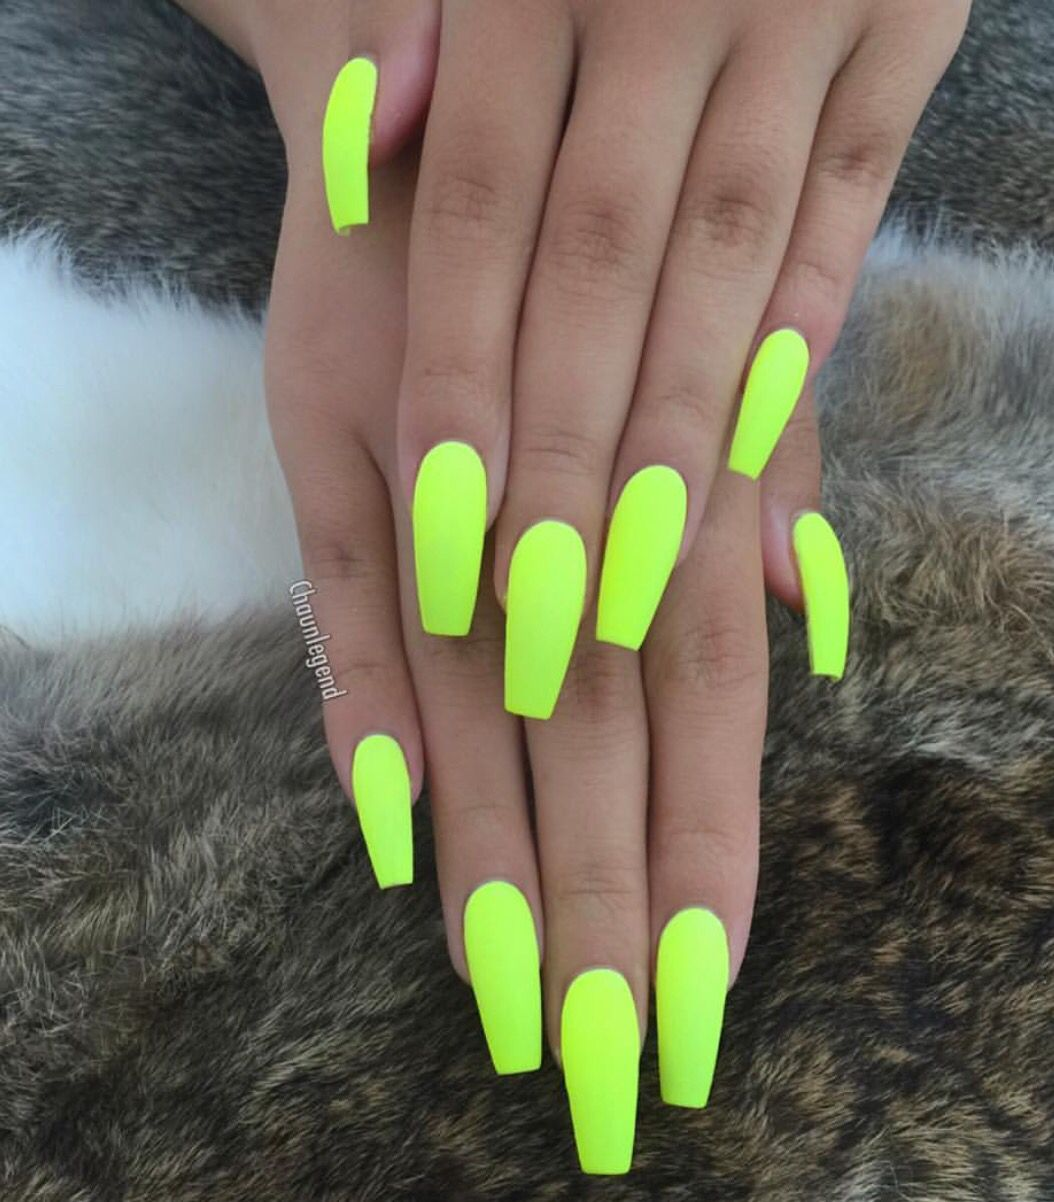 Summer Neon Nails | Mani Pedi | Pinterest | Neon nails, Neon and ...